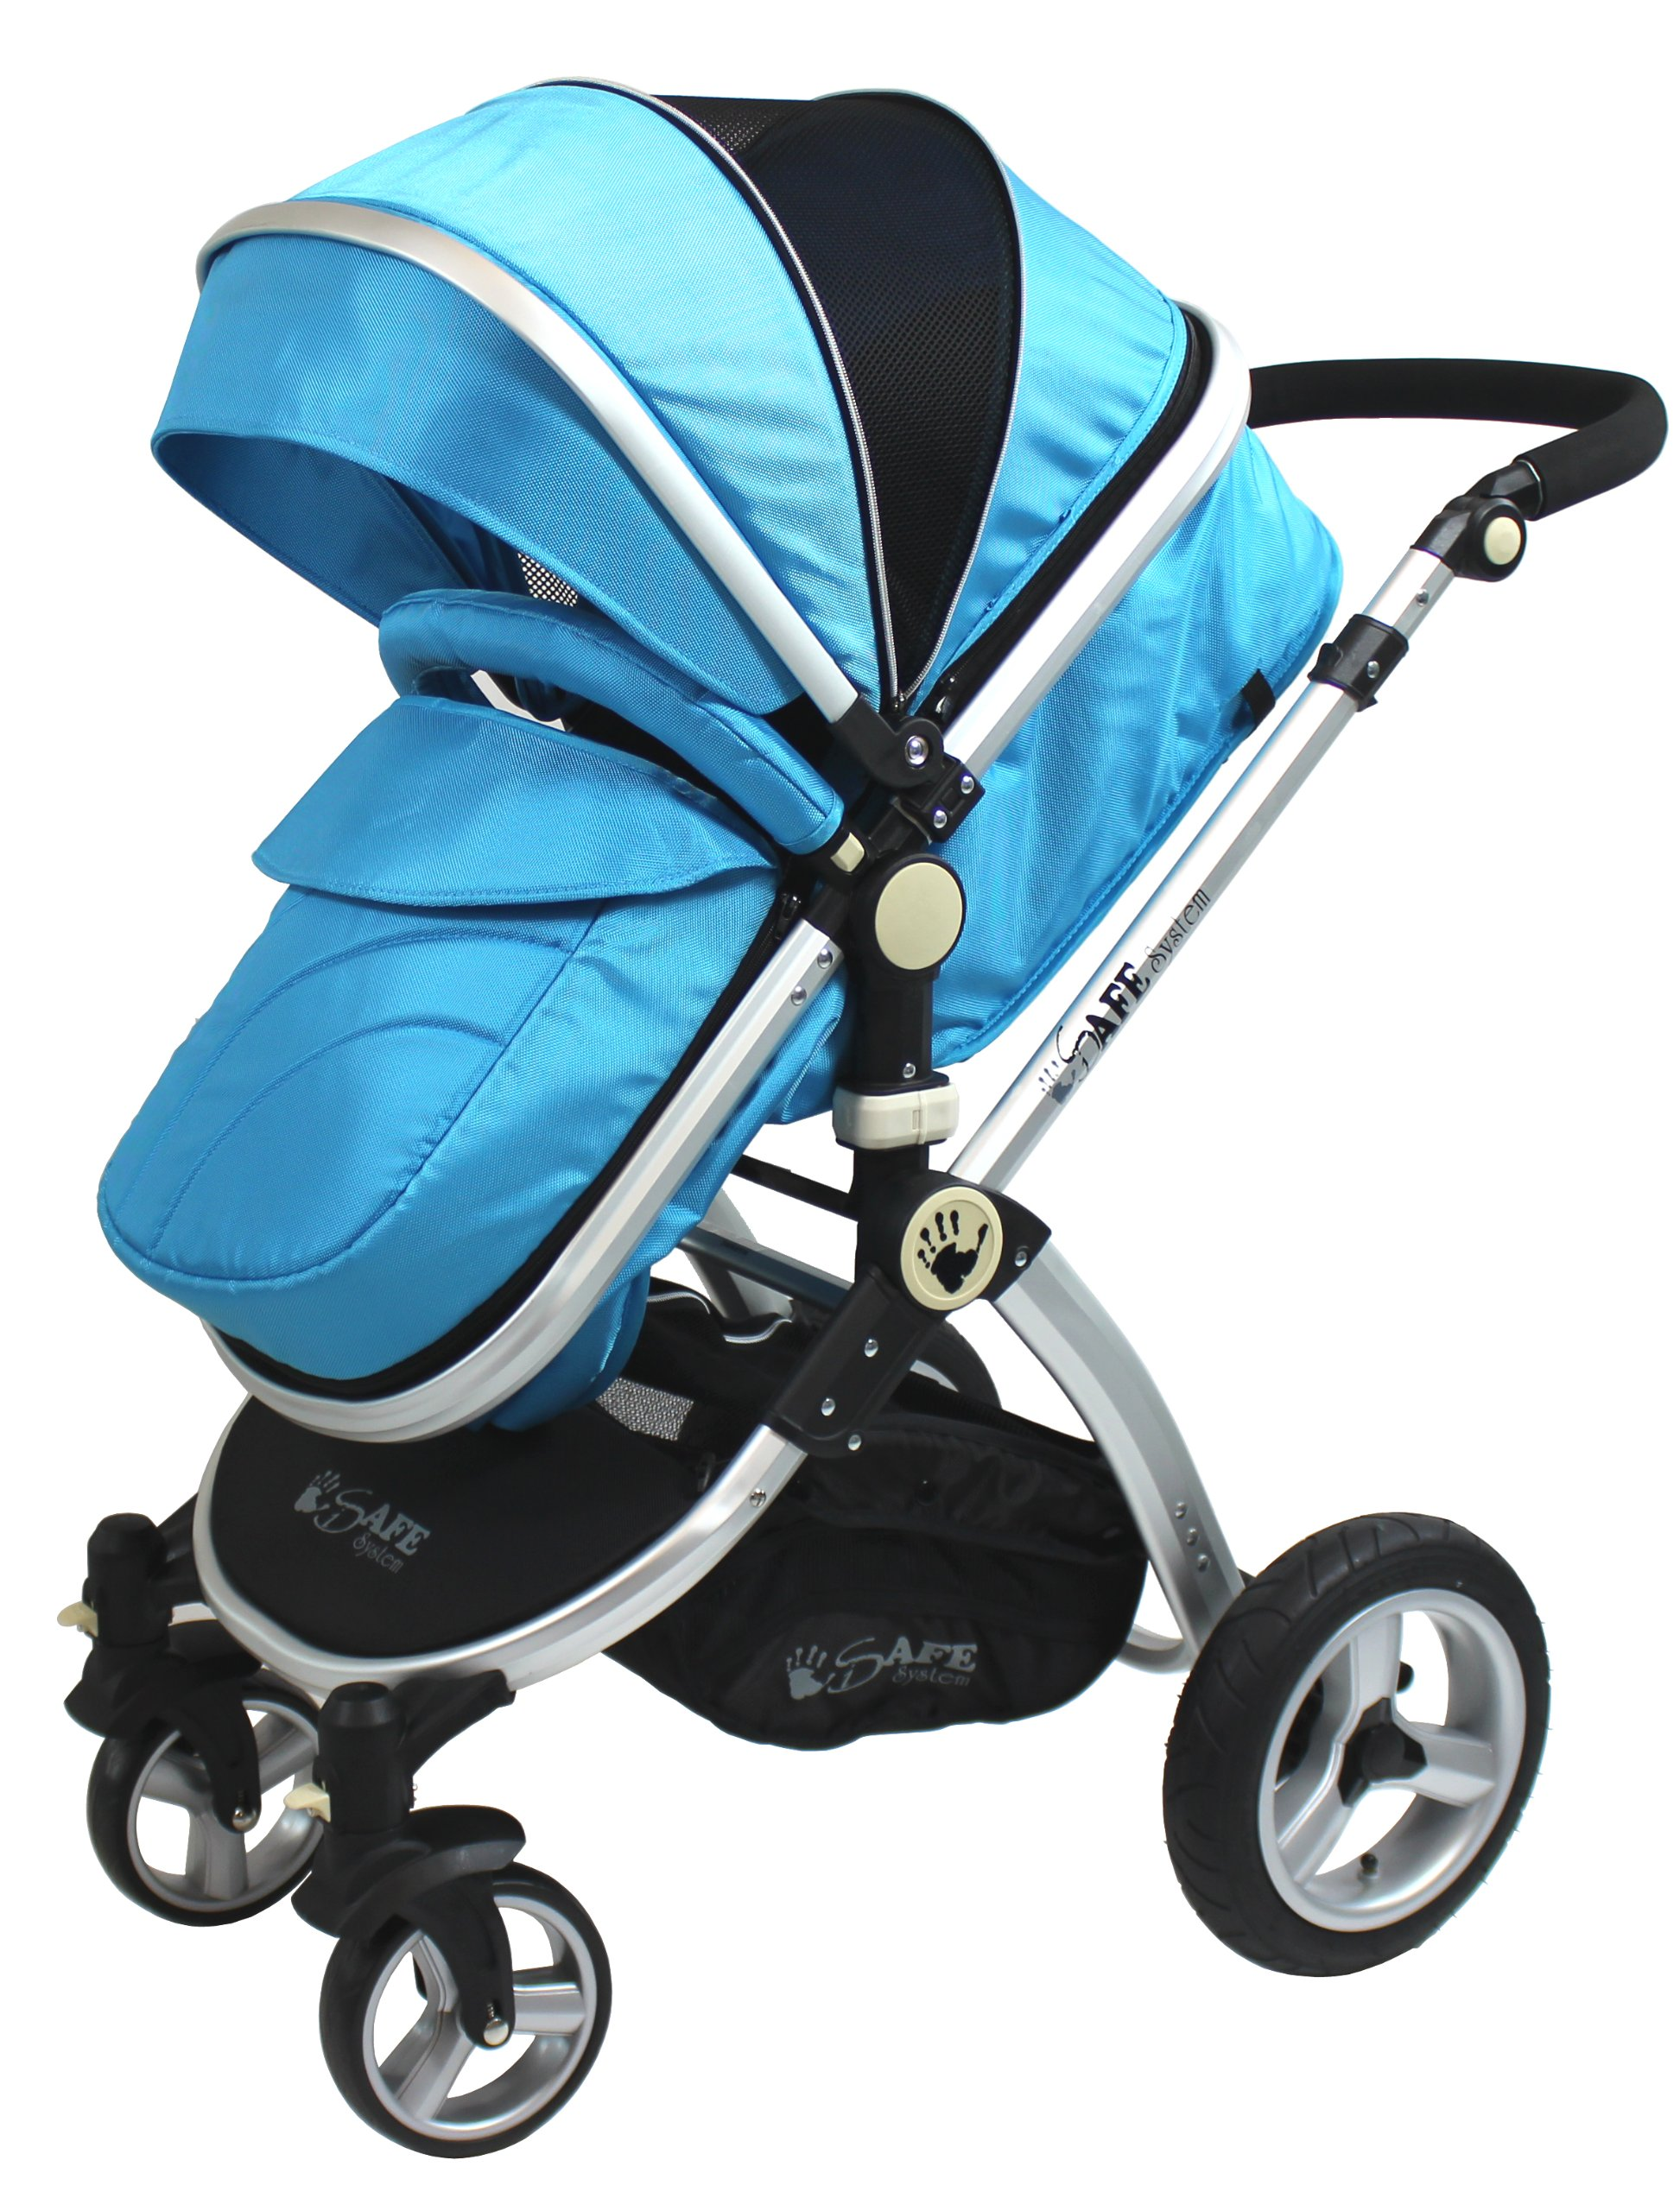 iSafe 2 in 1 Baby Pram System Complete (Ocean) iSafe We Are Proud To Present One Of The Finest 2in1 Stroller/Pram/Pramette/Travel System in the UK & Europe! 2 in 1 Stroller / Pram Extremely Easy Conversion To A Full Size Carrycot For Unrivalled Comfort. Complete With Boot Cover, Luxury Liner, 5 Point Harness, Raincover, Shopping Basket With Closed Ziped Top High Quality Rubber Inflatable Wheels With The Full All around Soft Suspension For That Perfect Unrivalled Ride 1